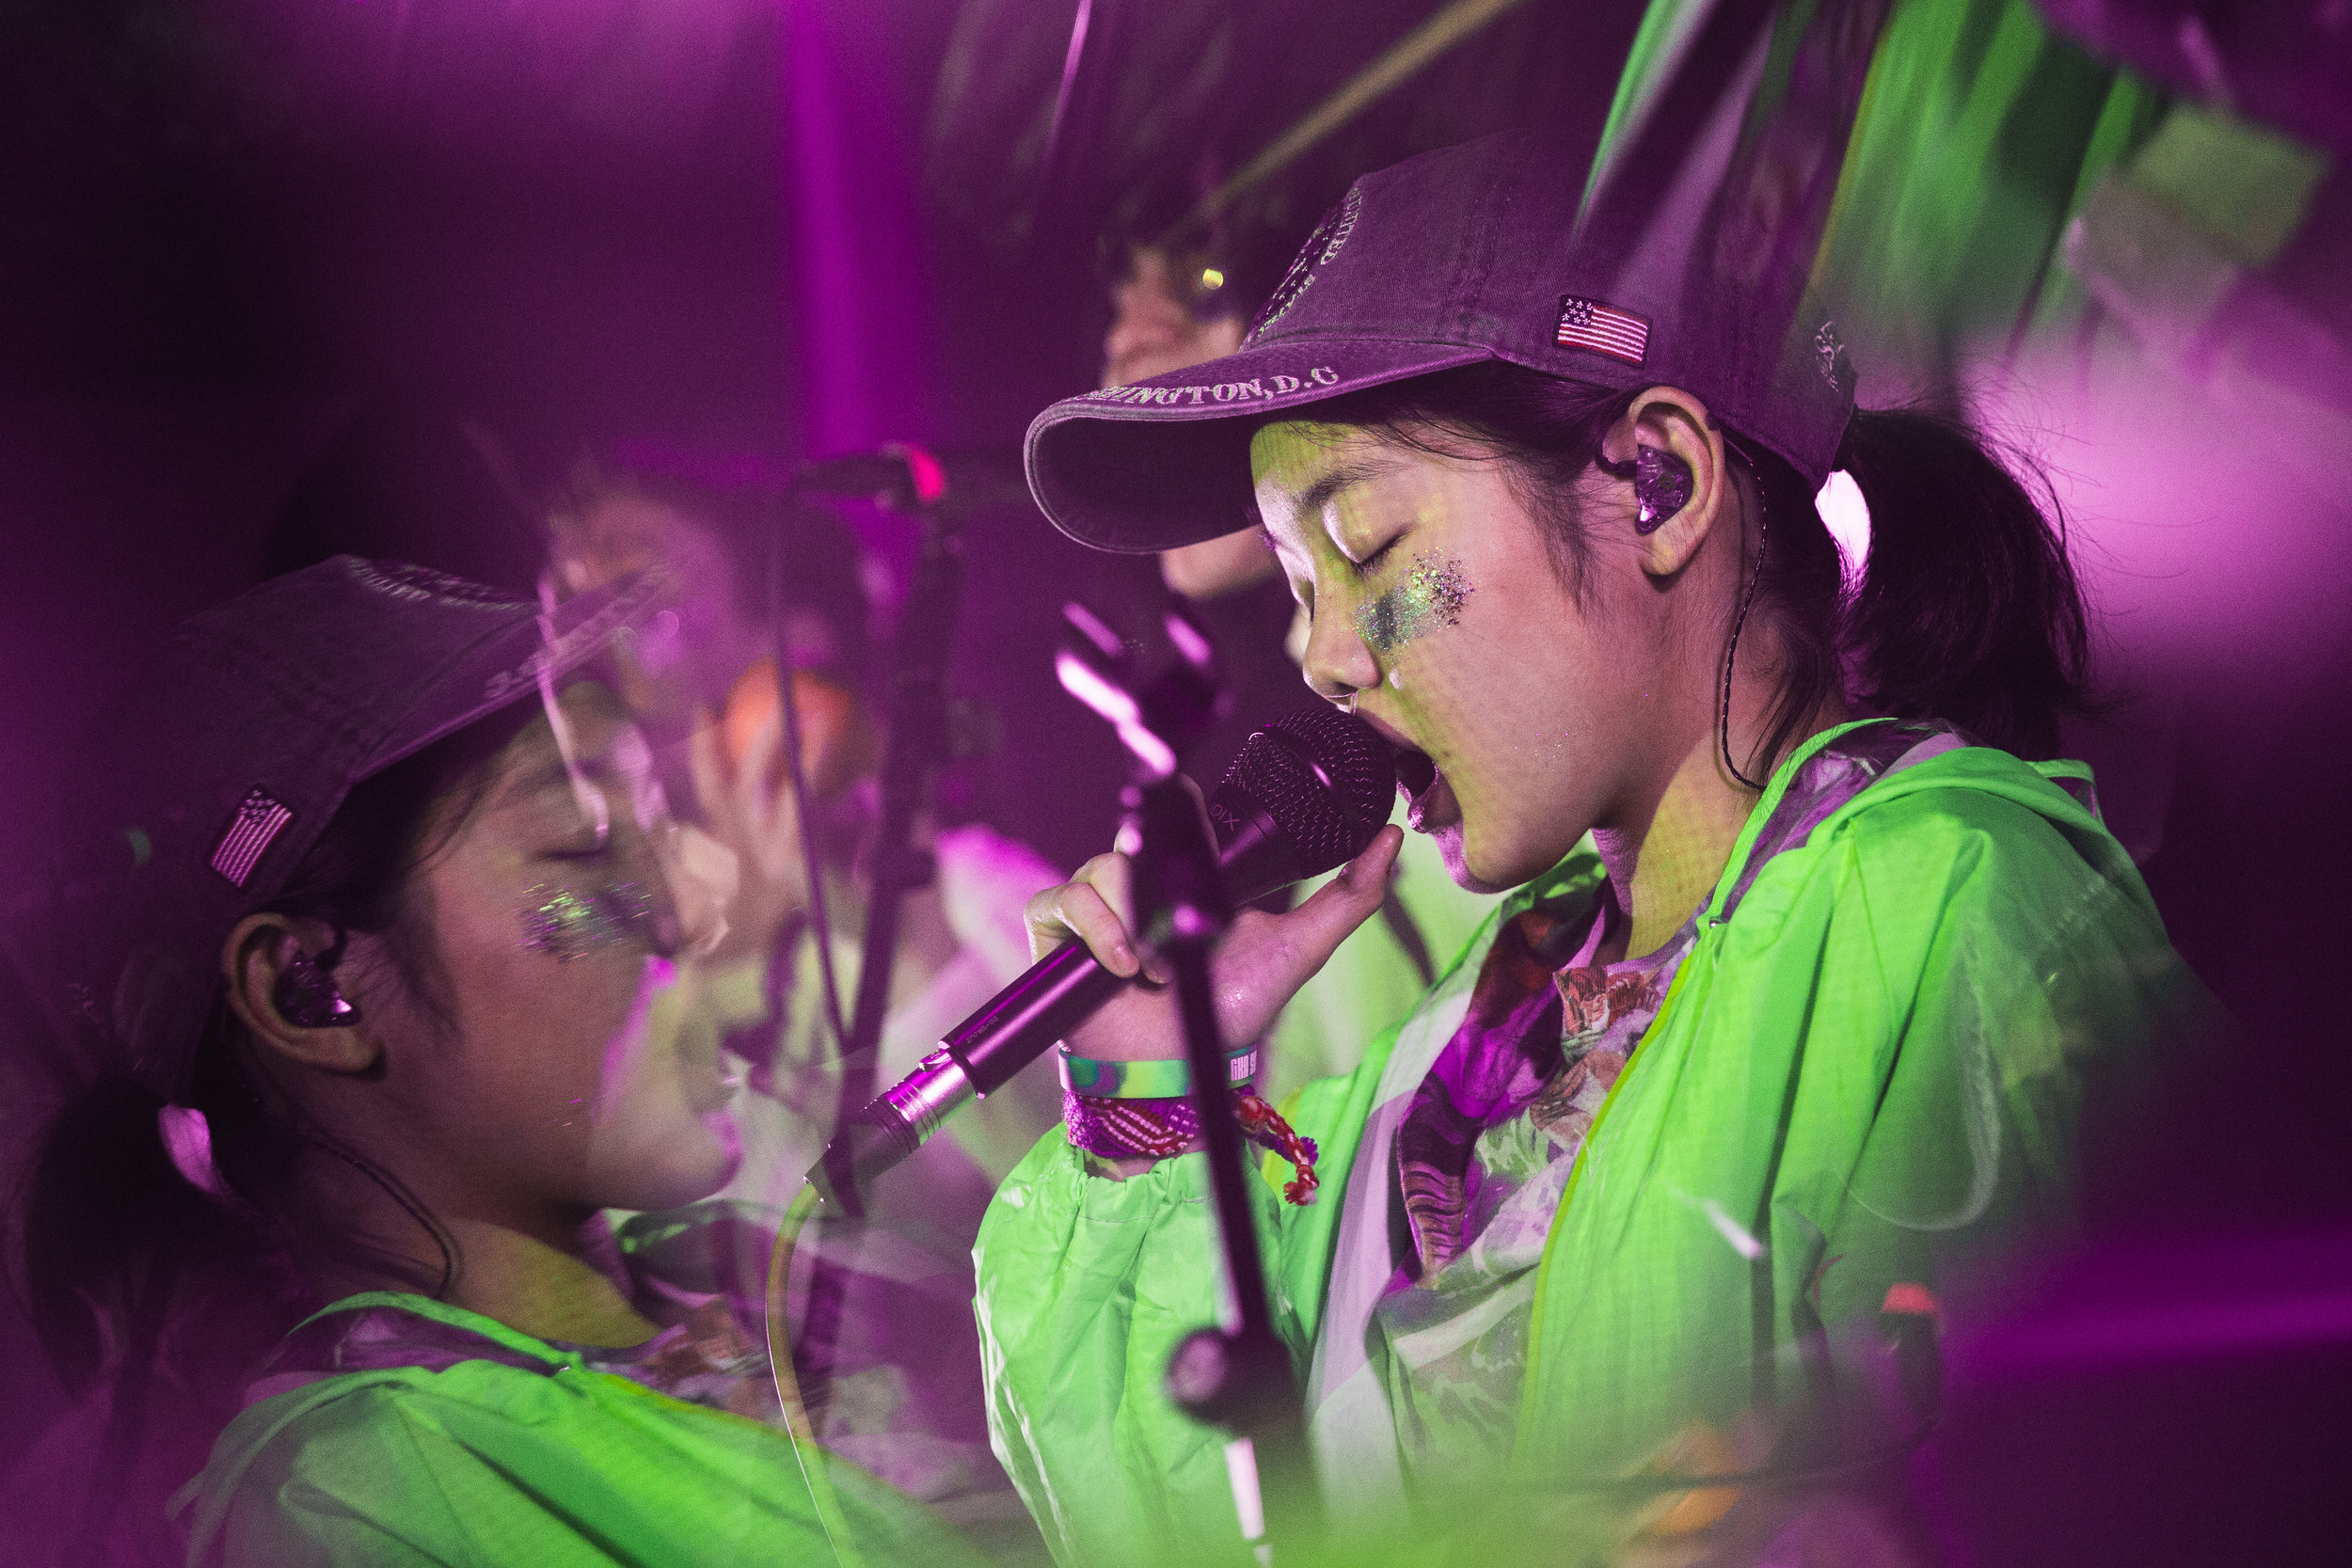 171217-kirby-gladstein-photography-Superorganism-concert-Moroccan-Lounge-Los-Angeles-8474.jpg